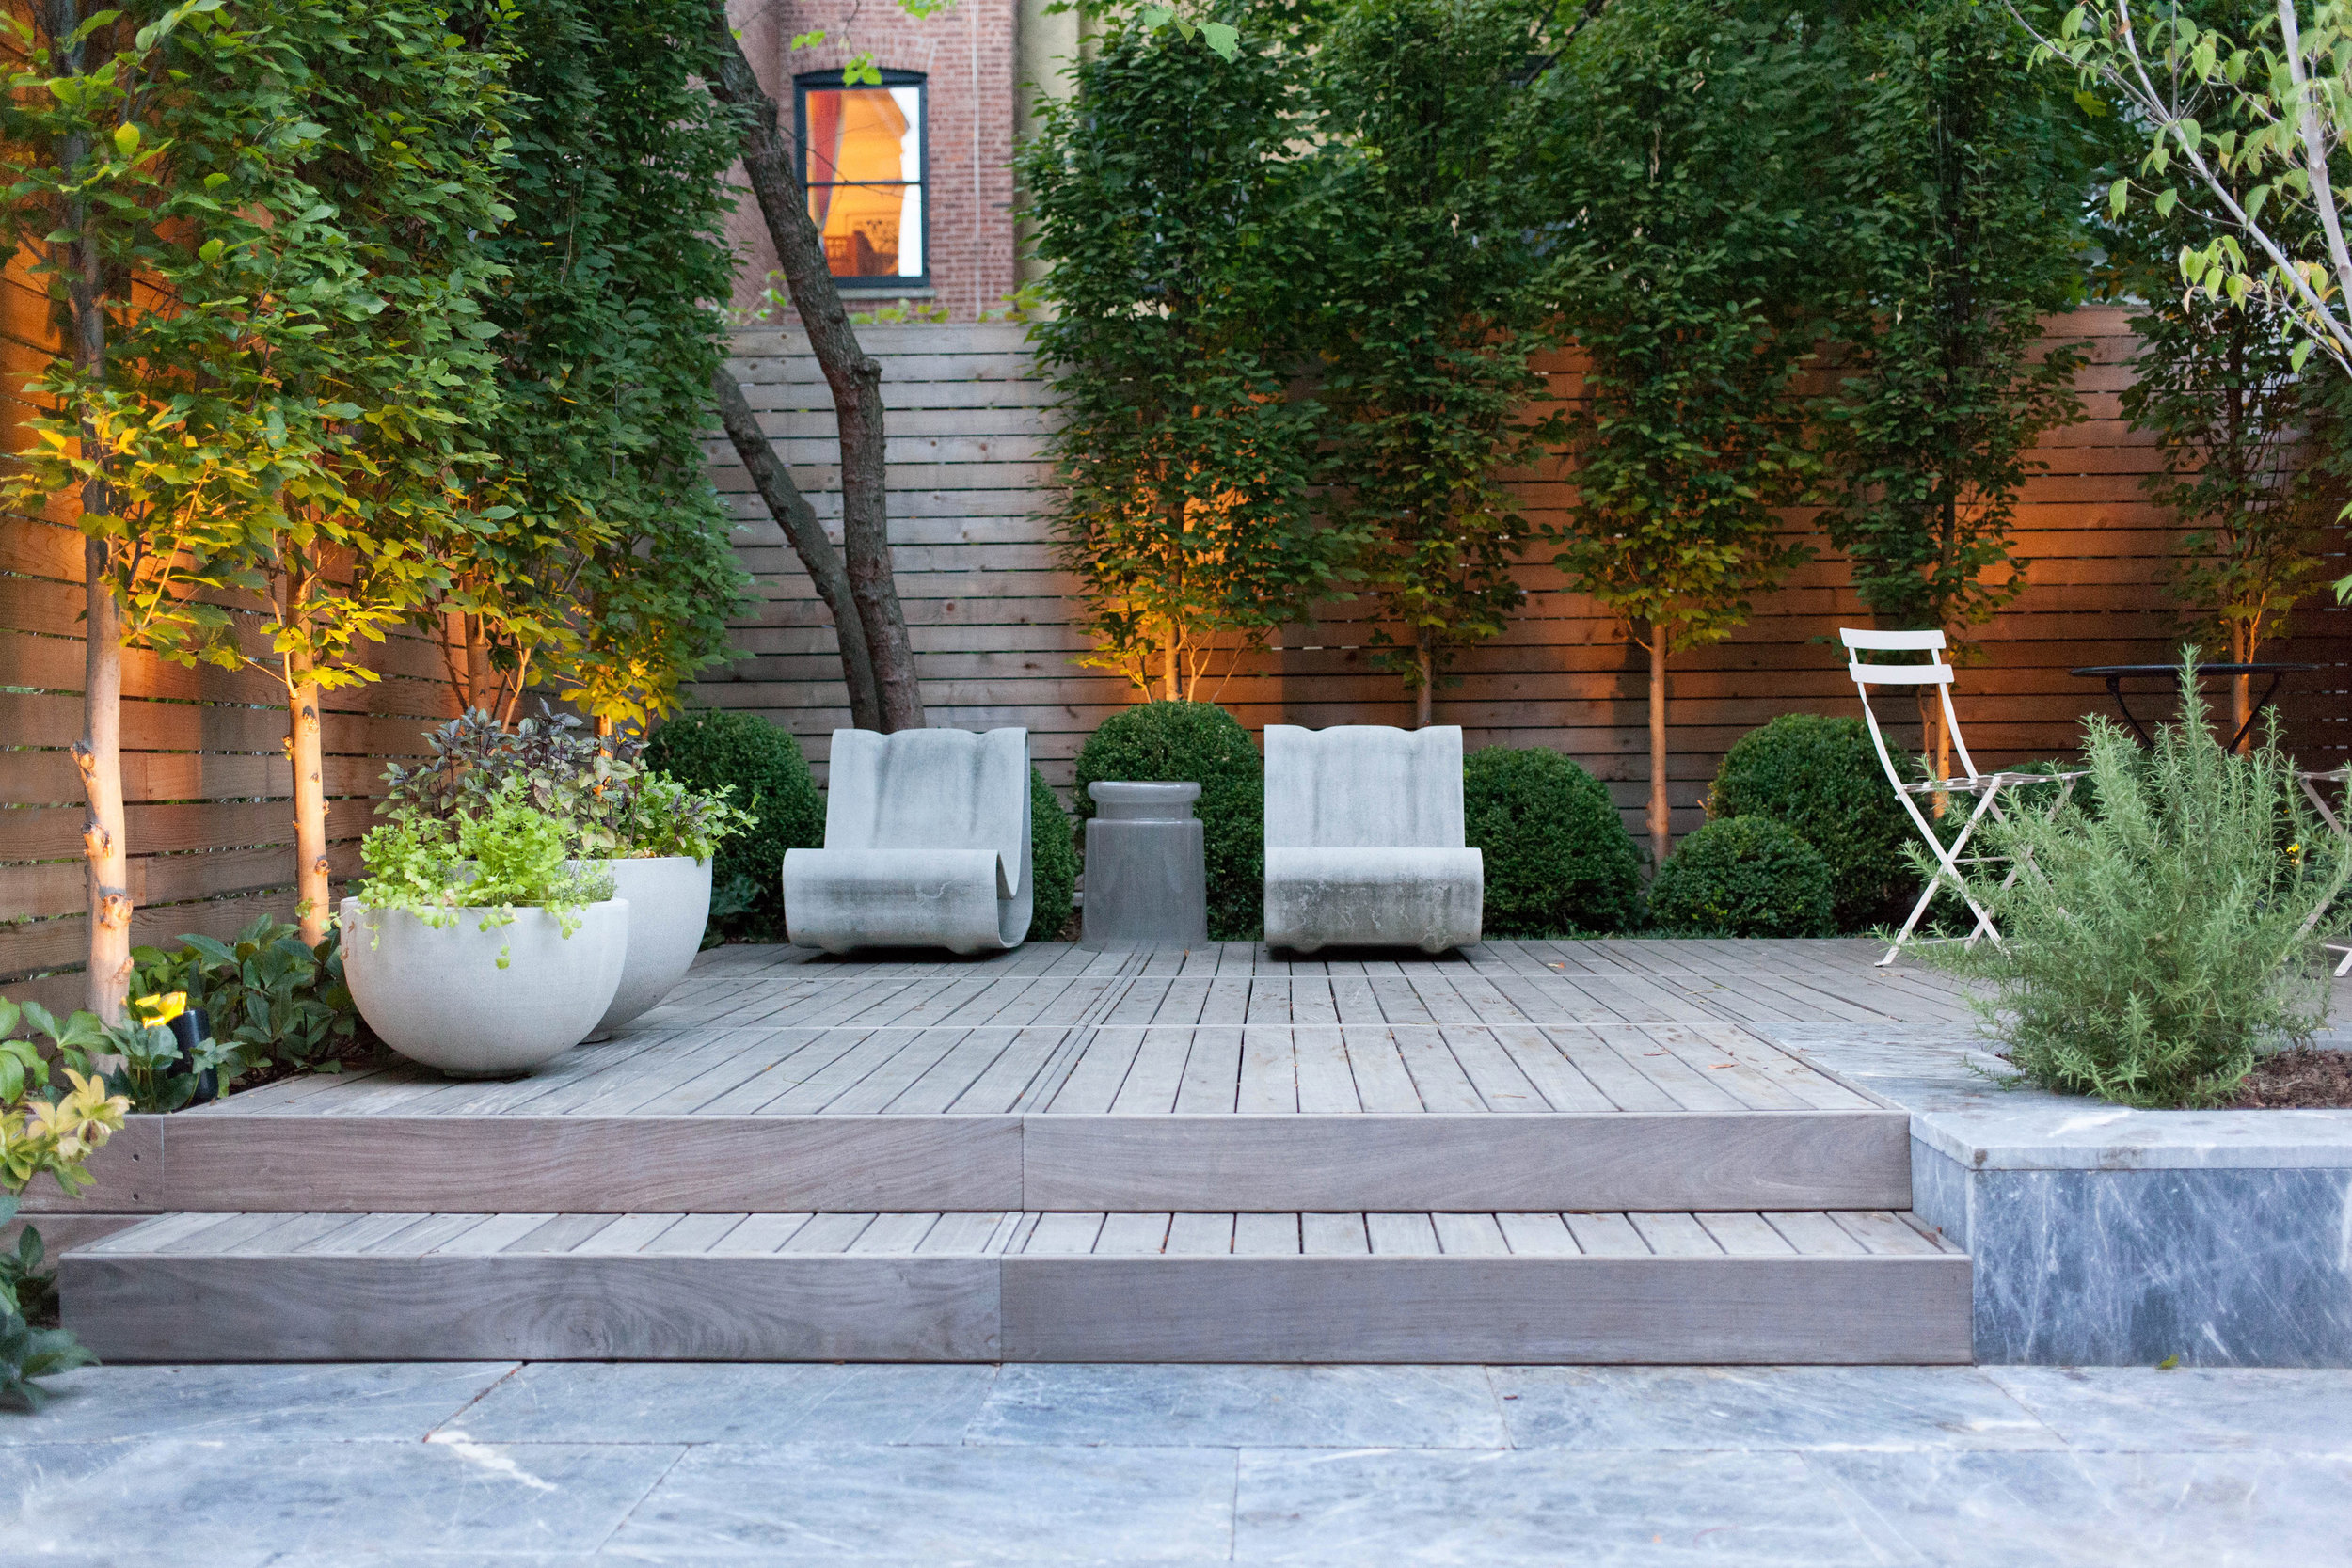 Midwood - Rear yard : A photo showing the installation of a marble patio and IPE deck with uplighting on hornbeams and a horizontal cedar fence.